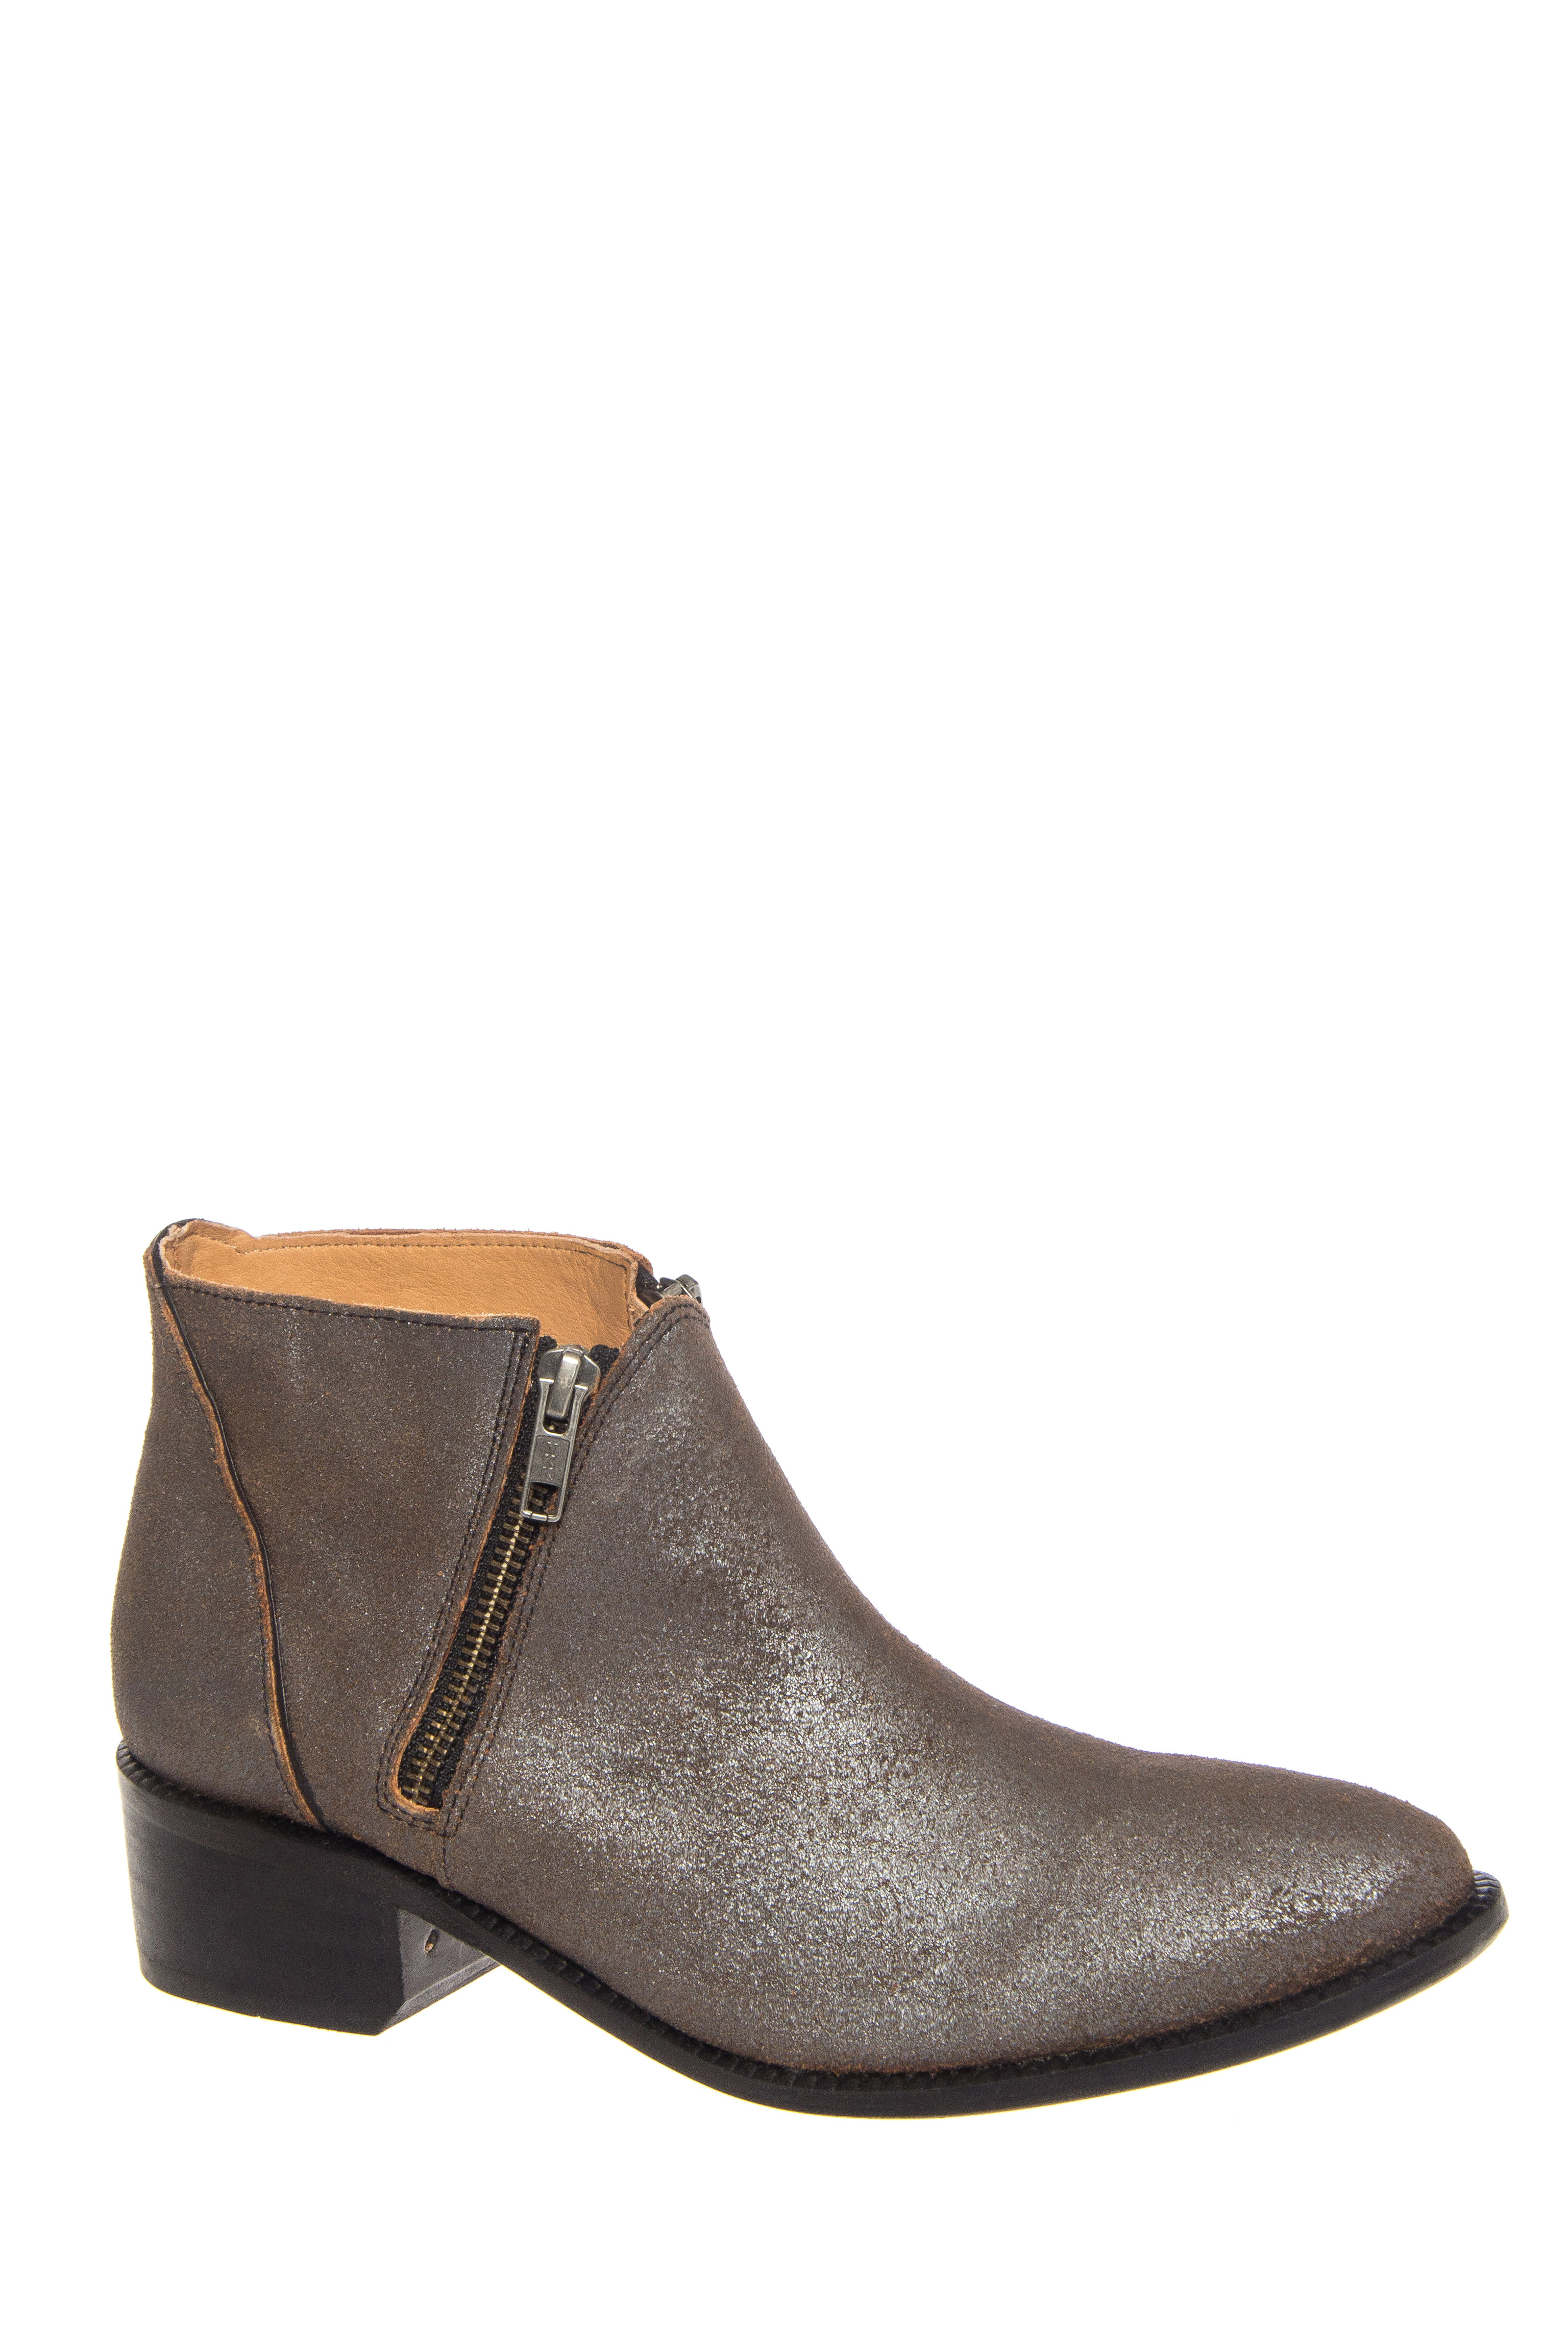 H by Hudson Jilt Mid Heel Ankle Rise Booties - Pewter